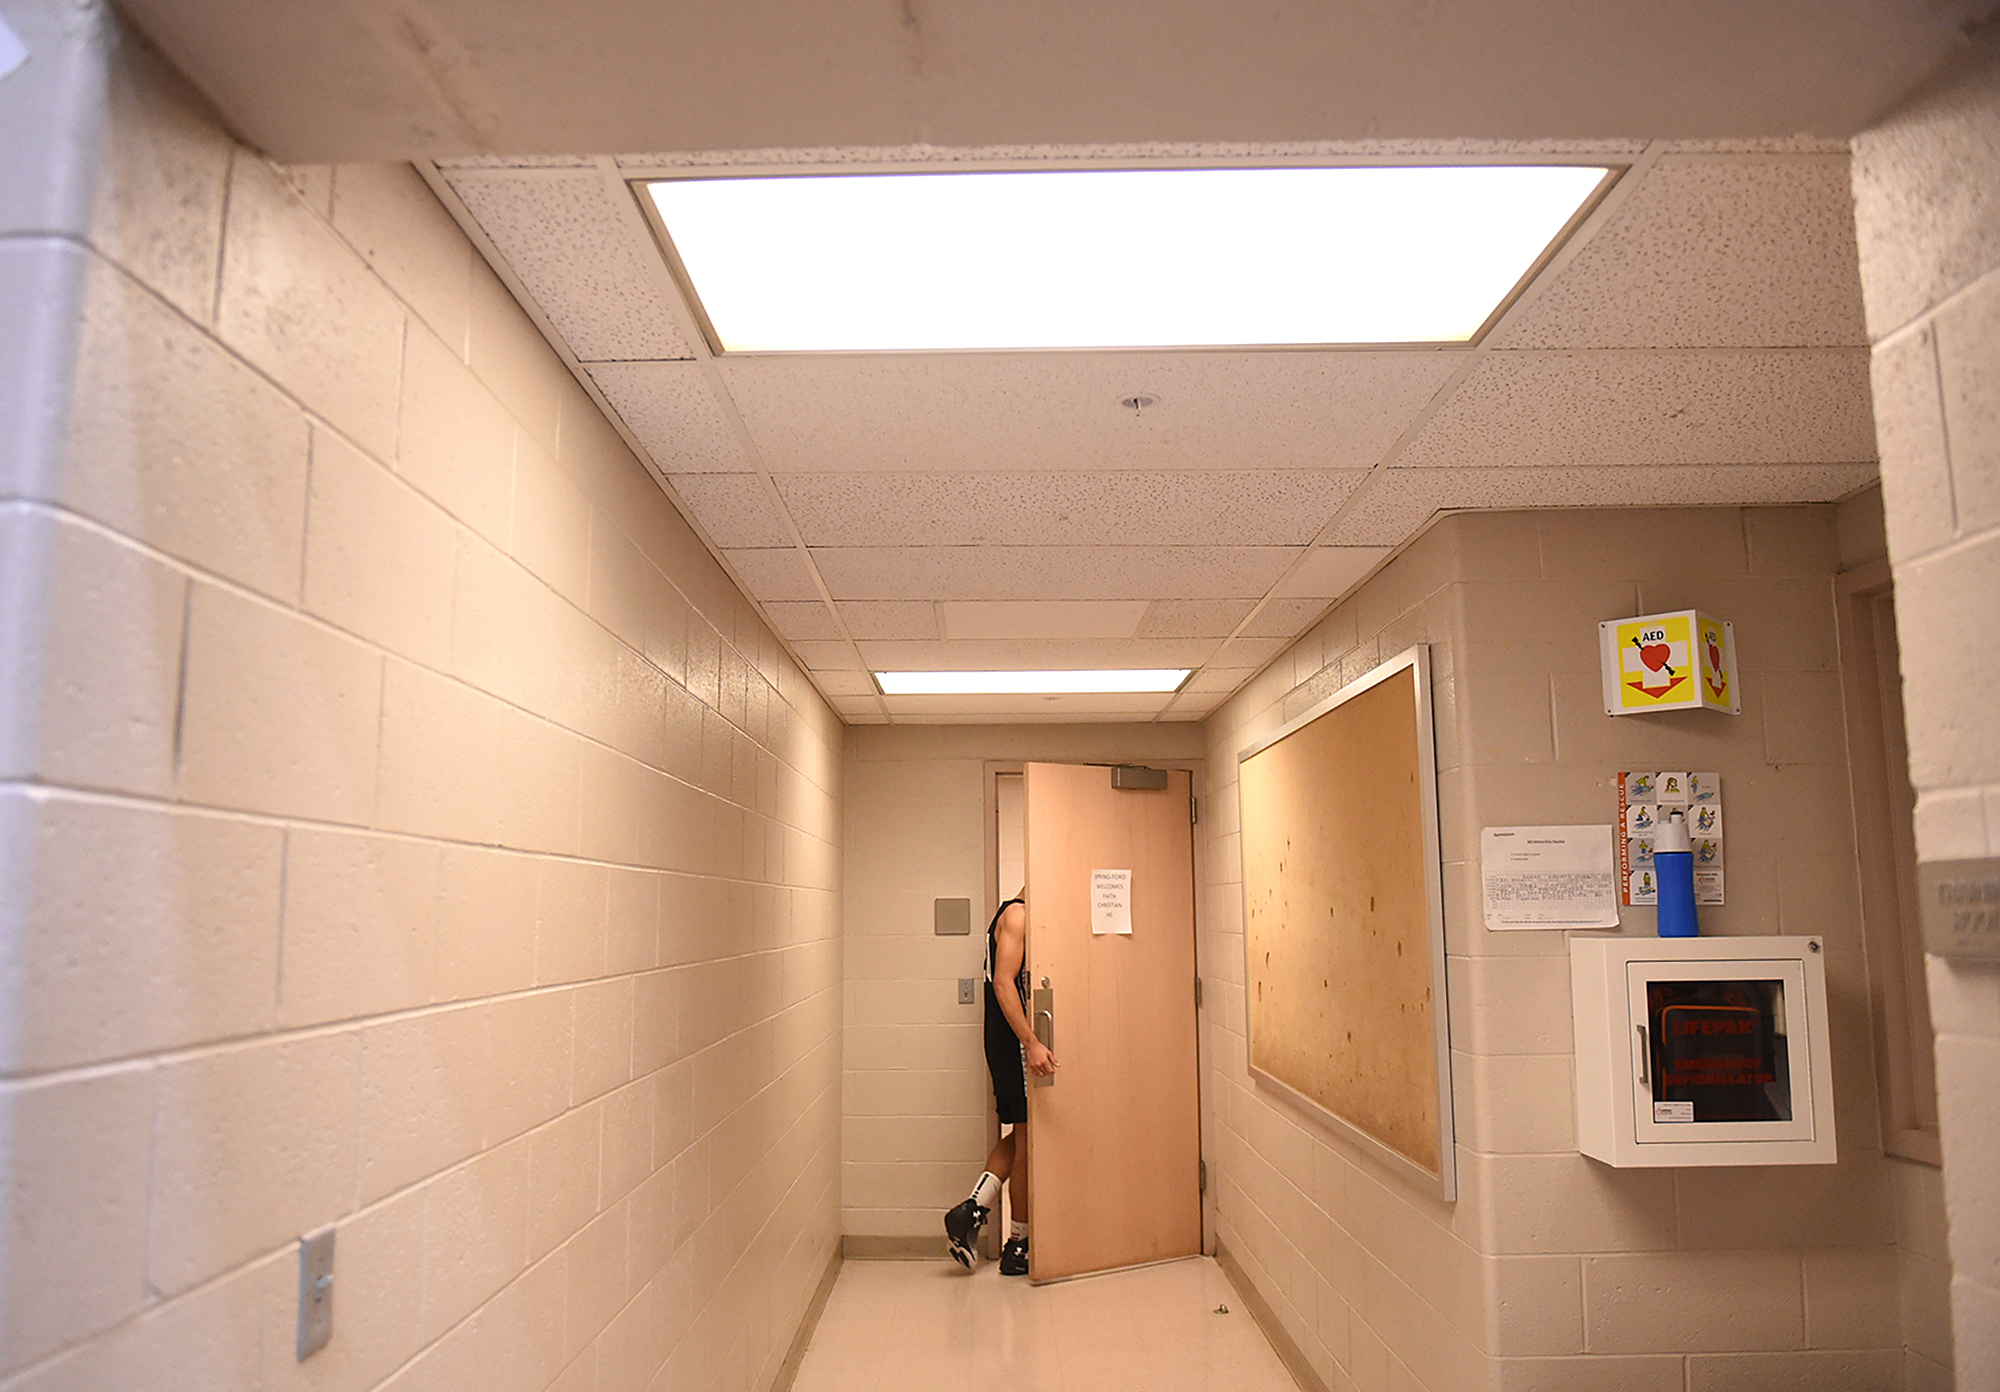 Faith Christian's Charles Ervin (20) is the last to the locker room after pausing to take a moment to himself after a 67-58 loss to Girard College during their PIAA Class A boys basketball semifinal game at Spring-Ford High School in Royersford on Monday, March 20, 2017. The game eliminates Faith Christian from state playoffs.